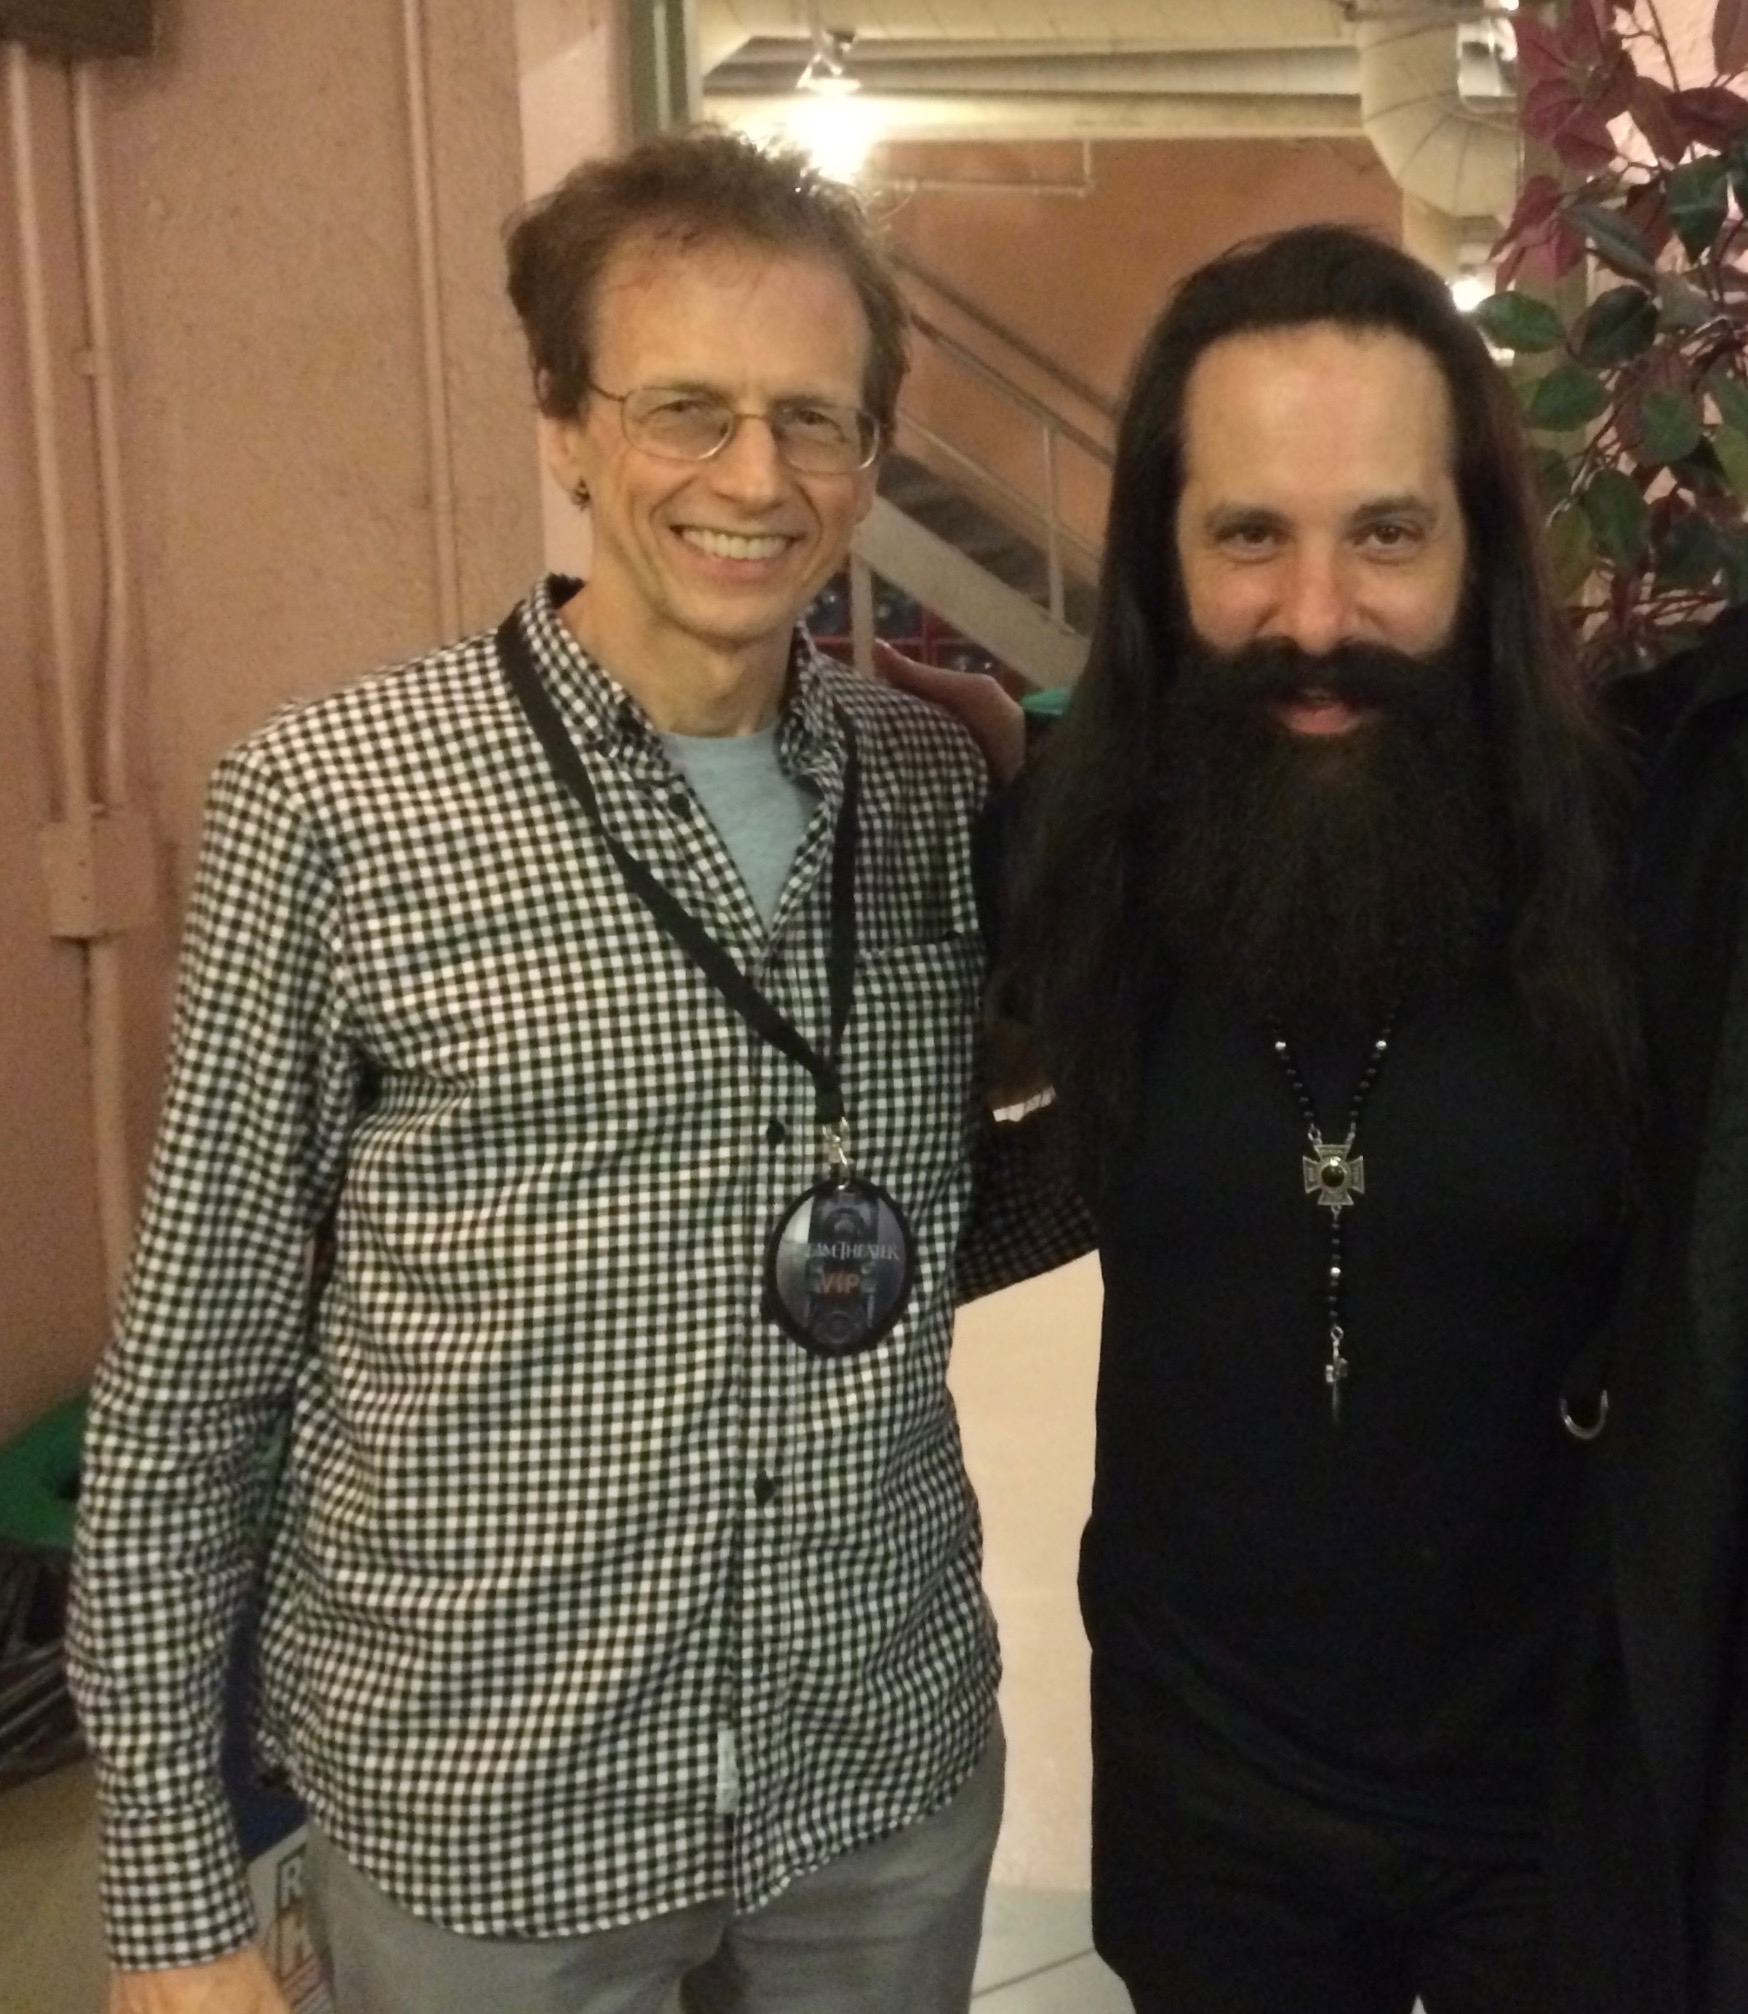 David Campbell with John Petrucci